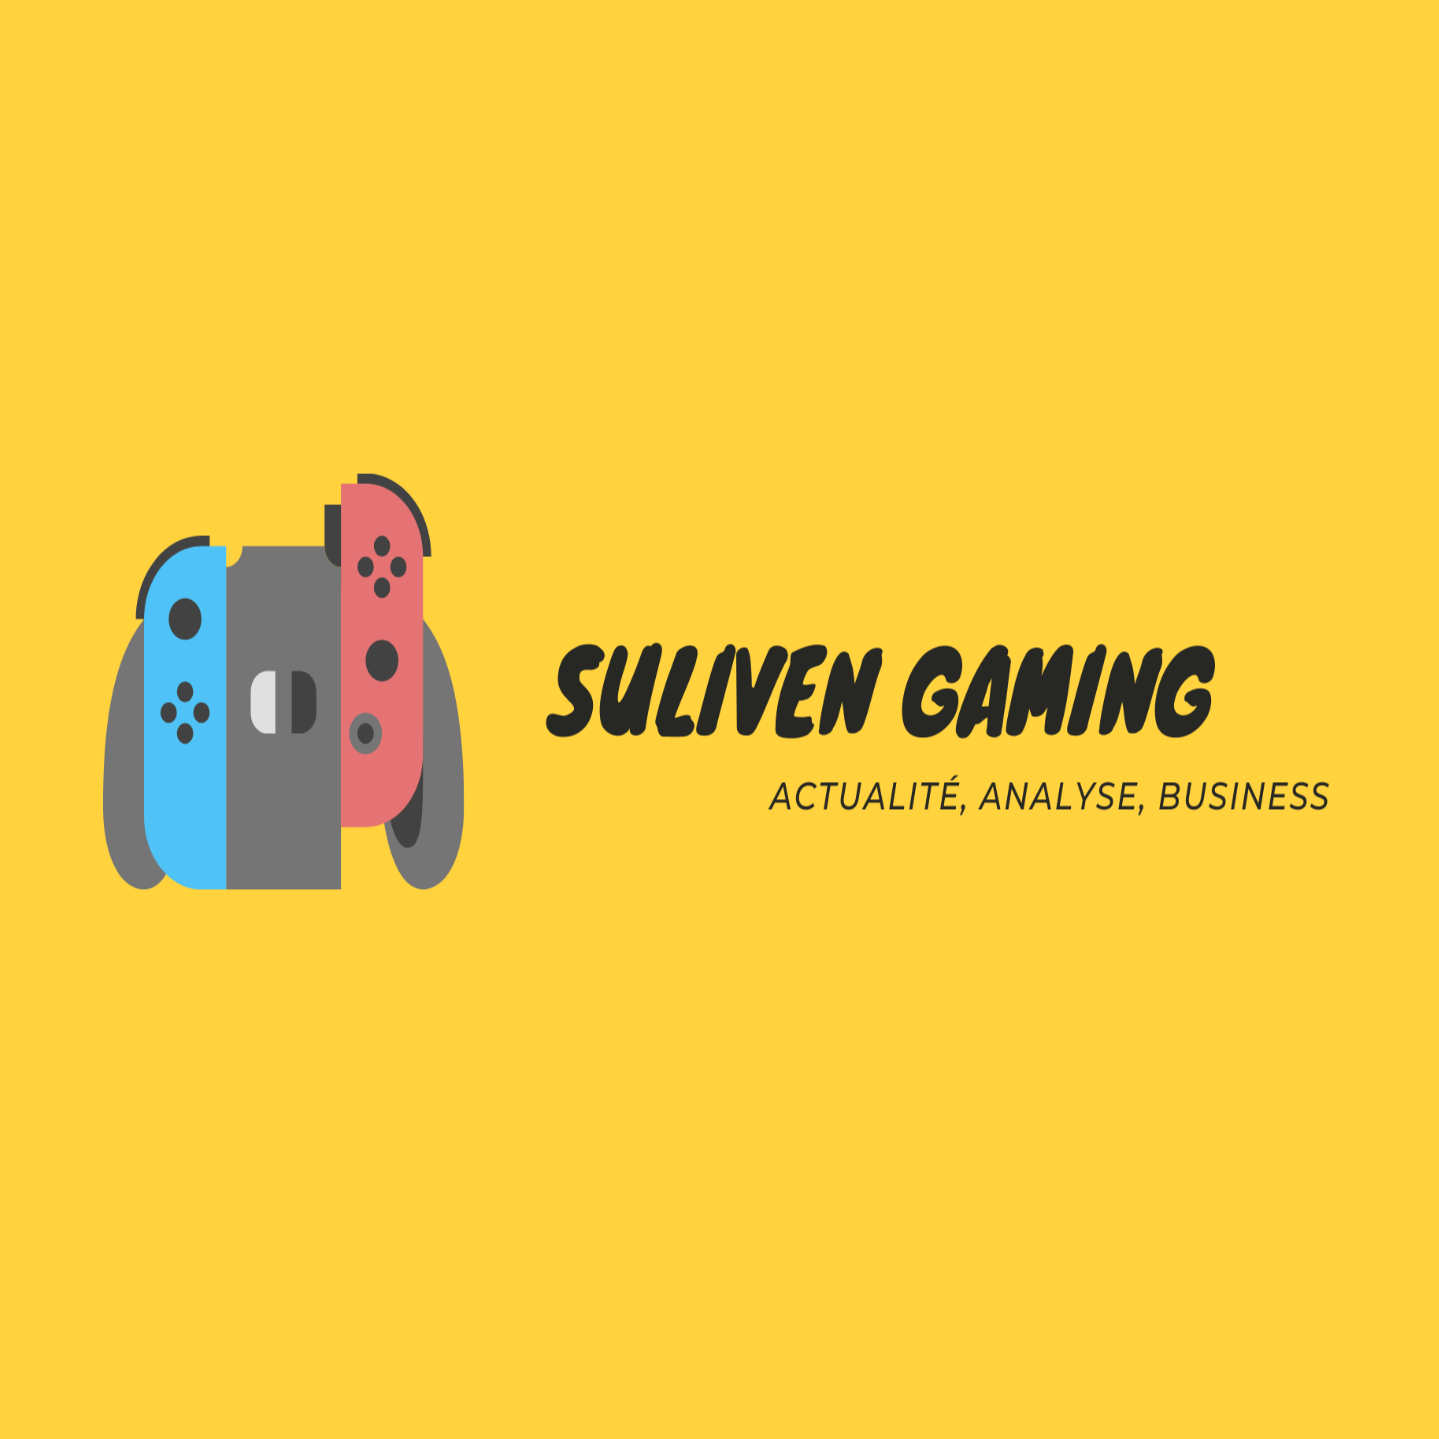 Suliven GAMING